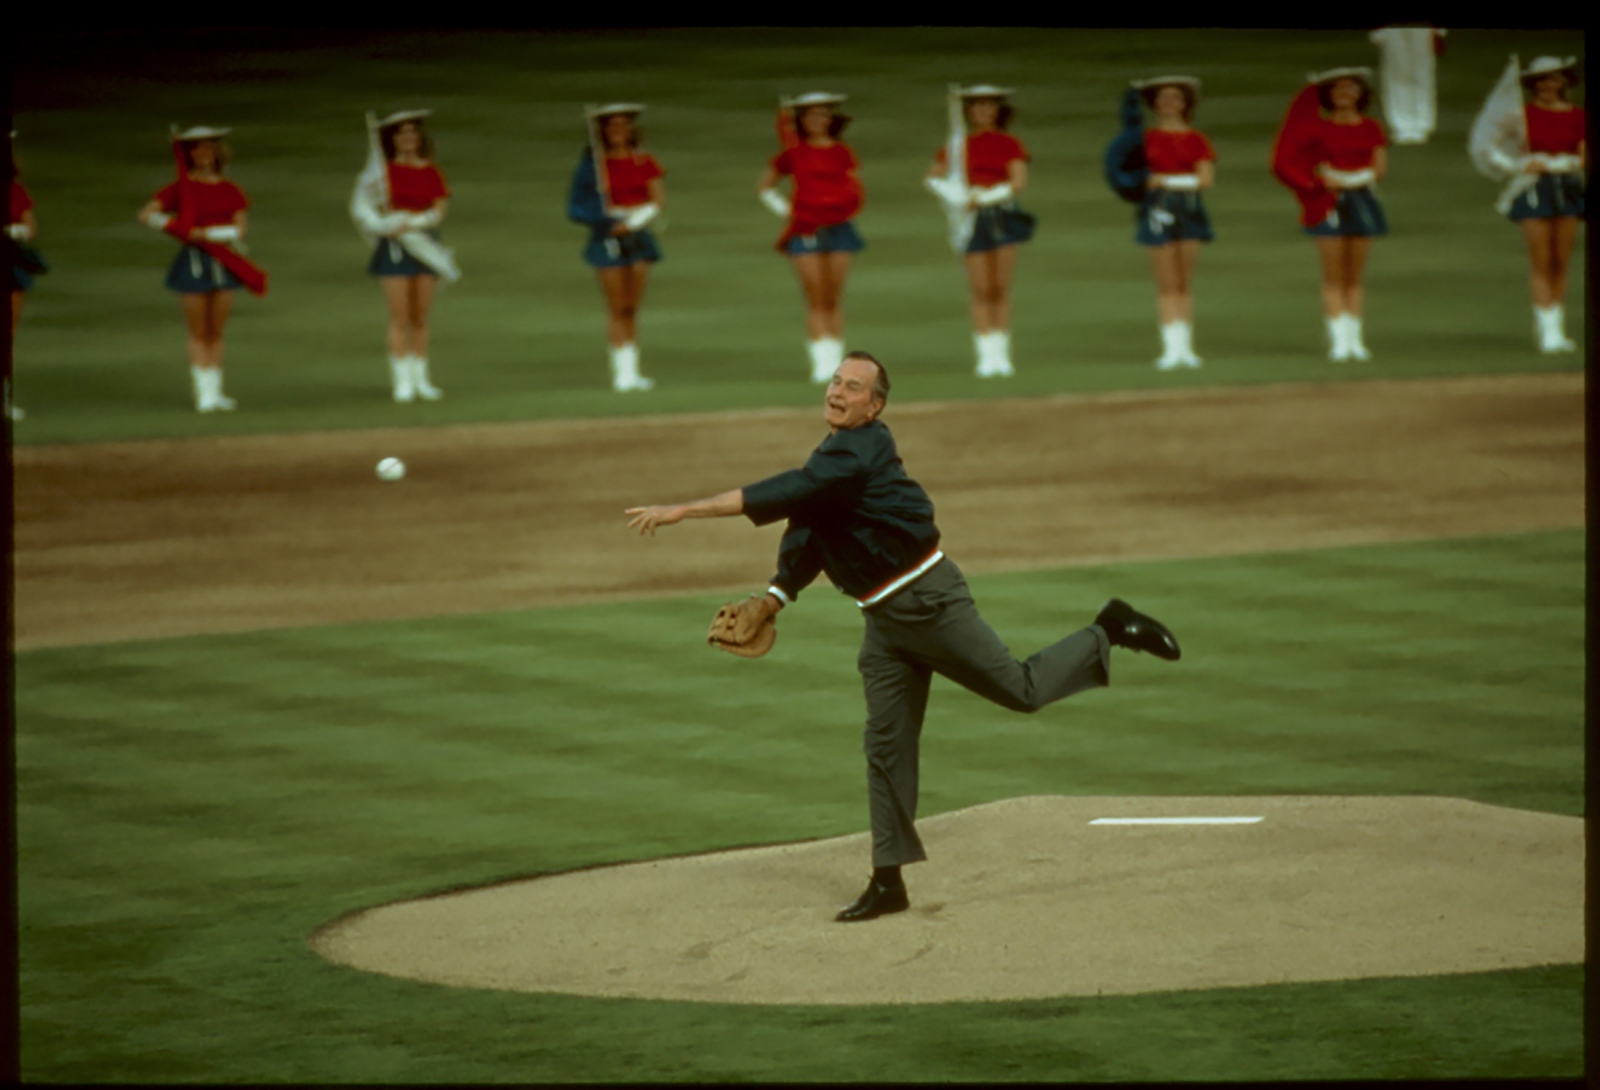 President George H.W. Bush throwing out first pitch of season, Arlington, Texas, USA. 1991.